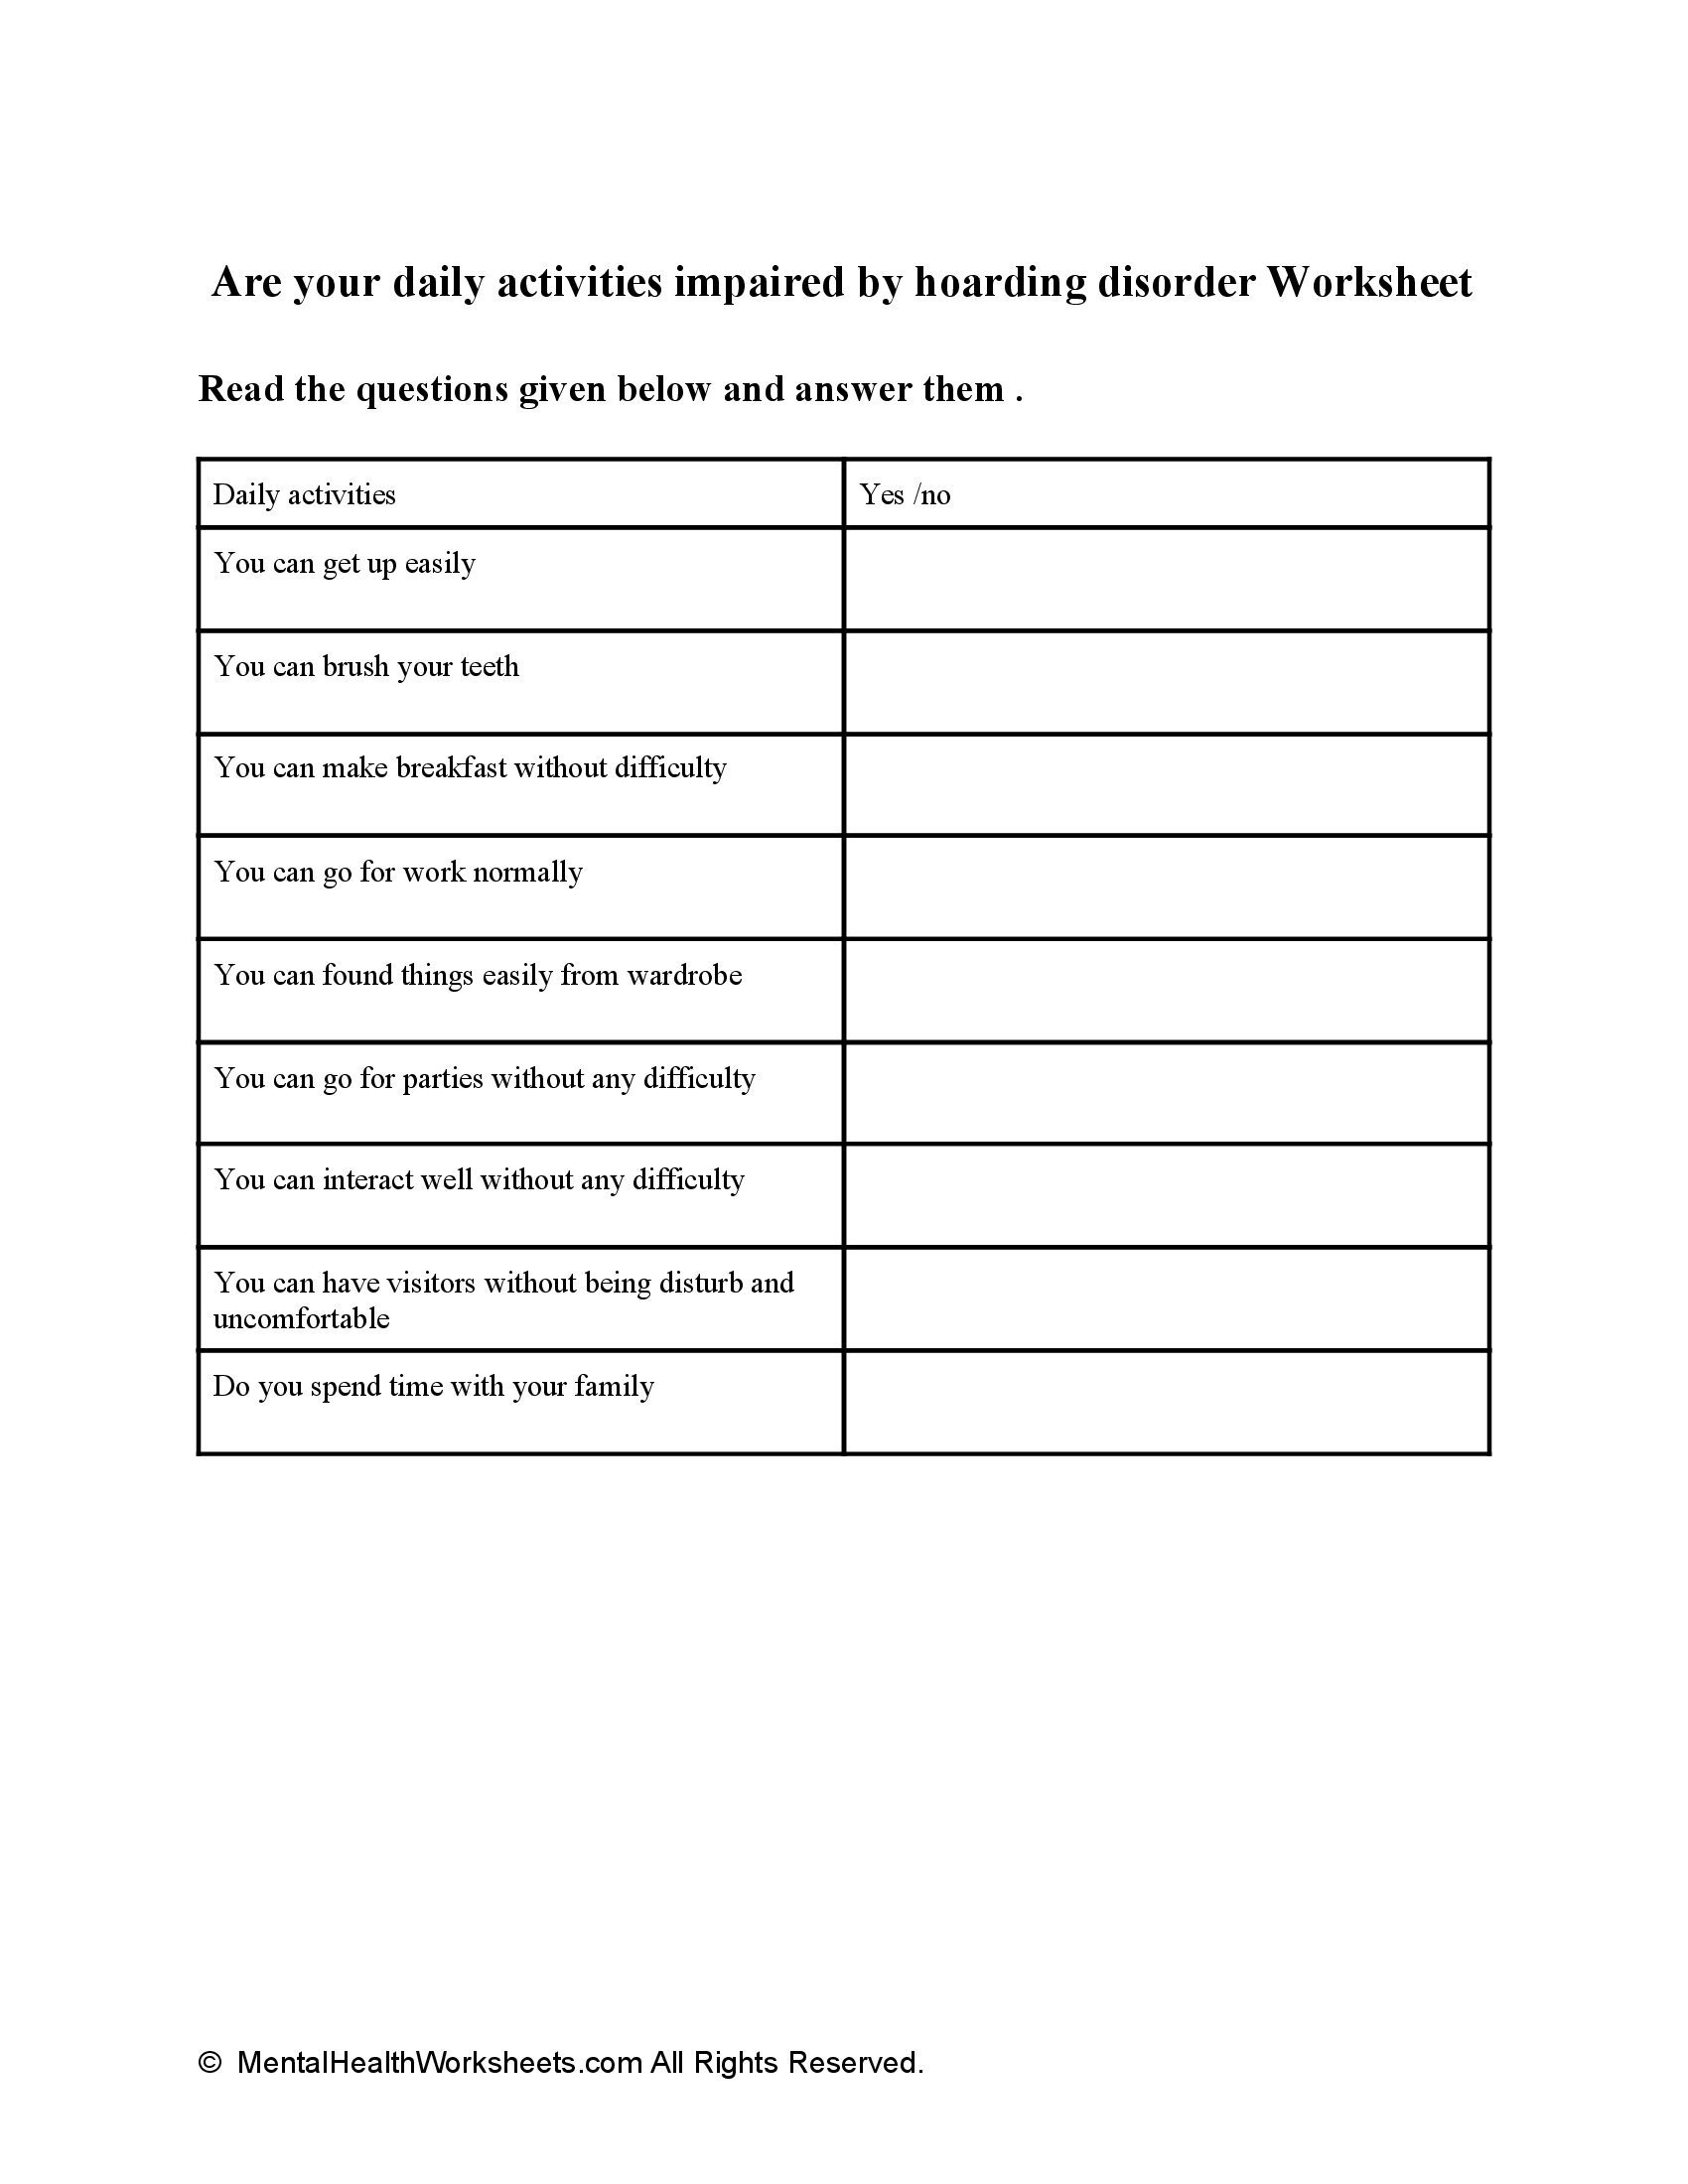 Are your daily activities impaired by hoarding disorder Worksheet